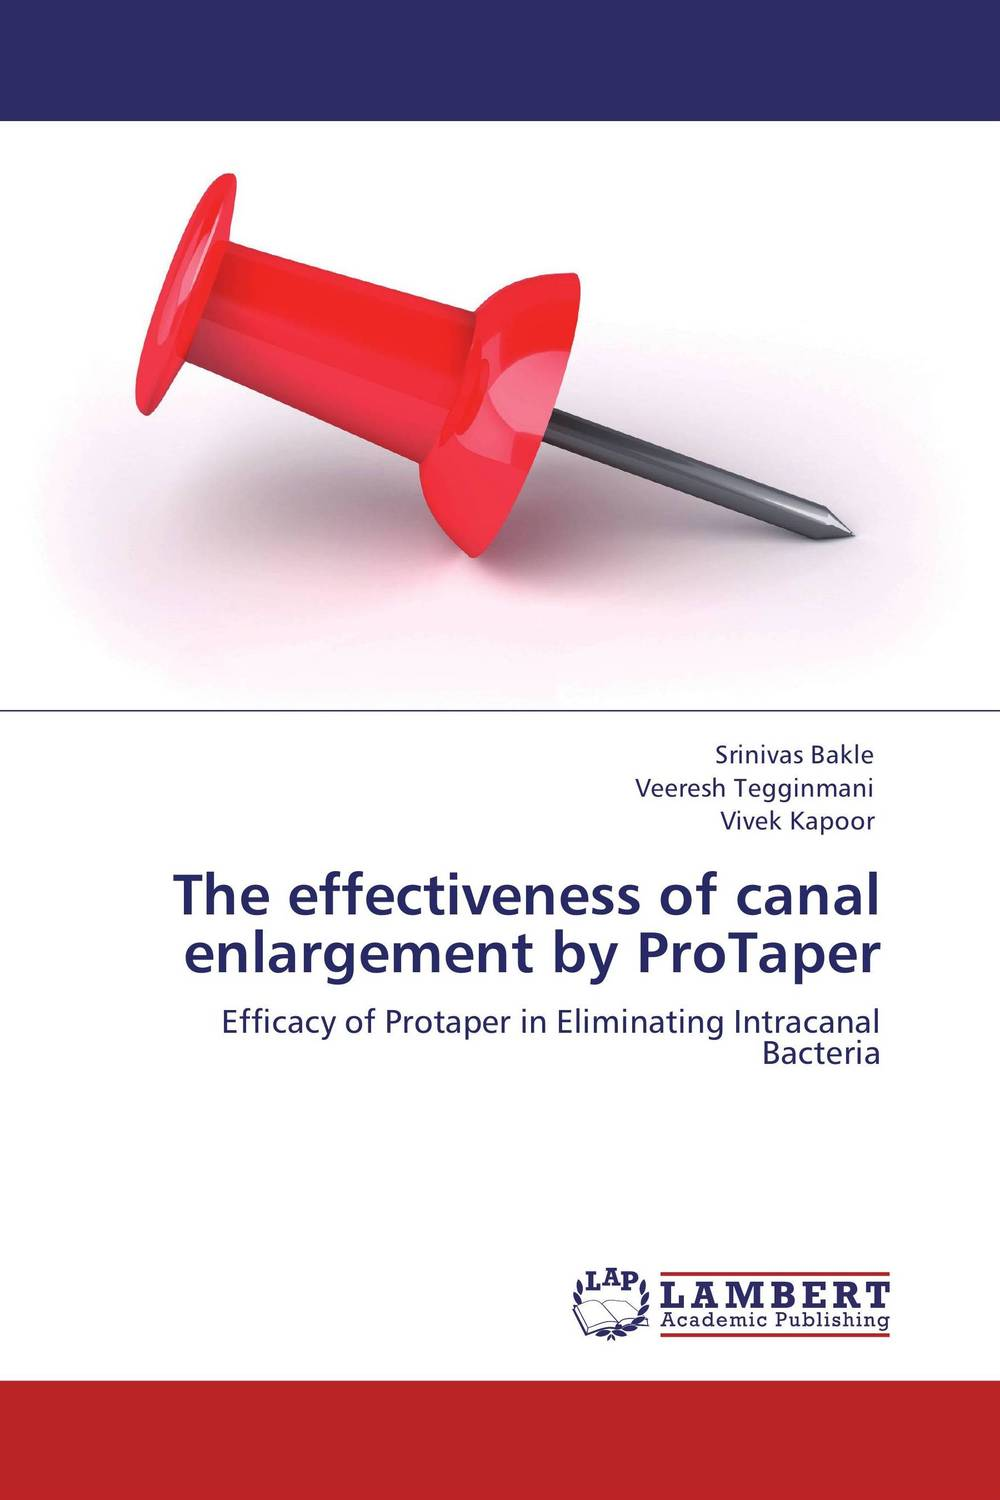 The effectiveness of canal enlargement by ProTaper benign enlargement of prostate gland bep in ayurveda